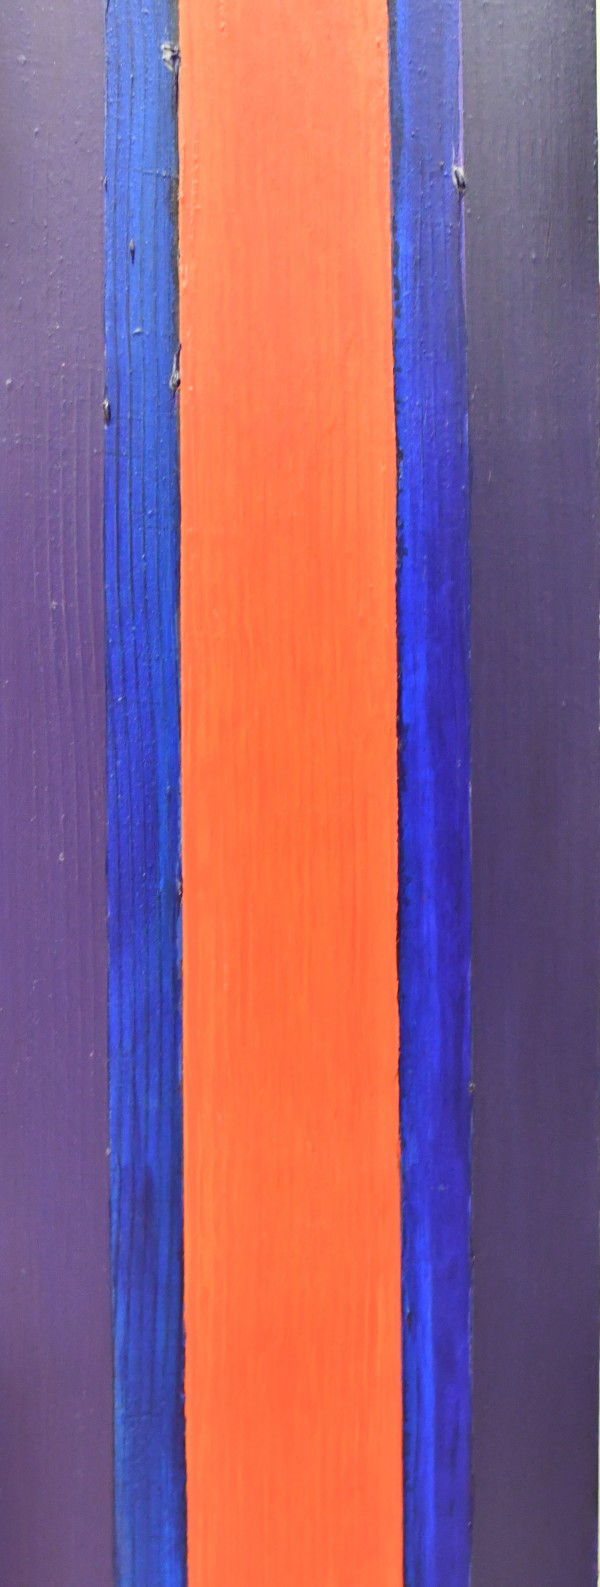 Alternation / Homage to Barnett Newman by HB Barry Strasbourg-Thompson BFA